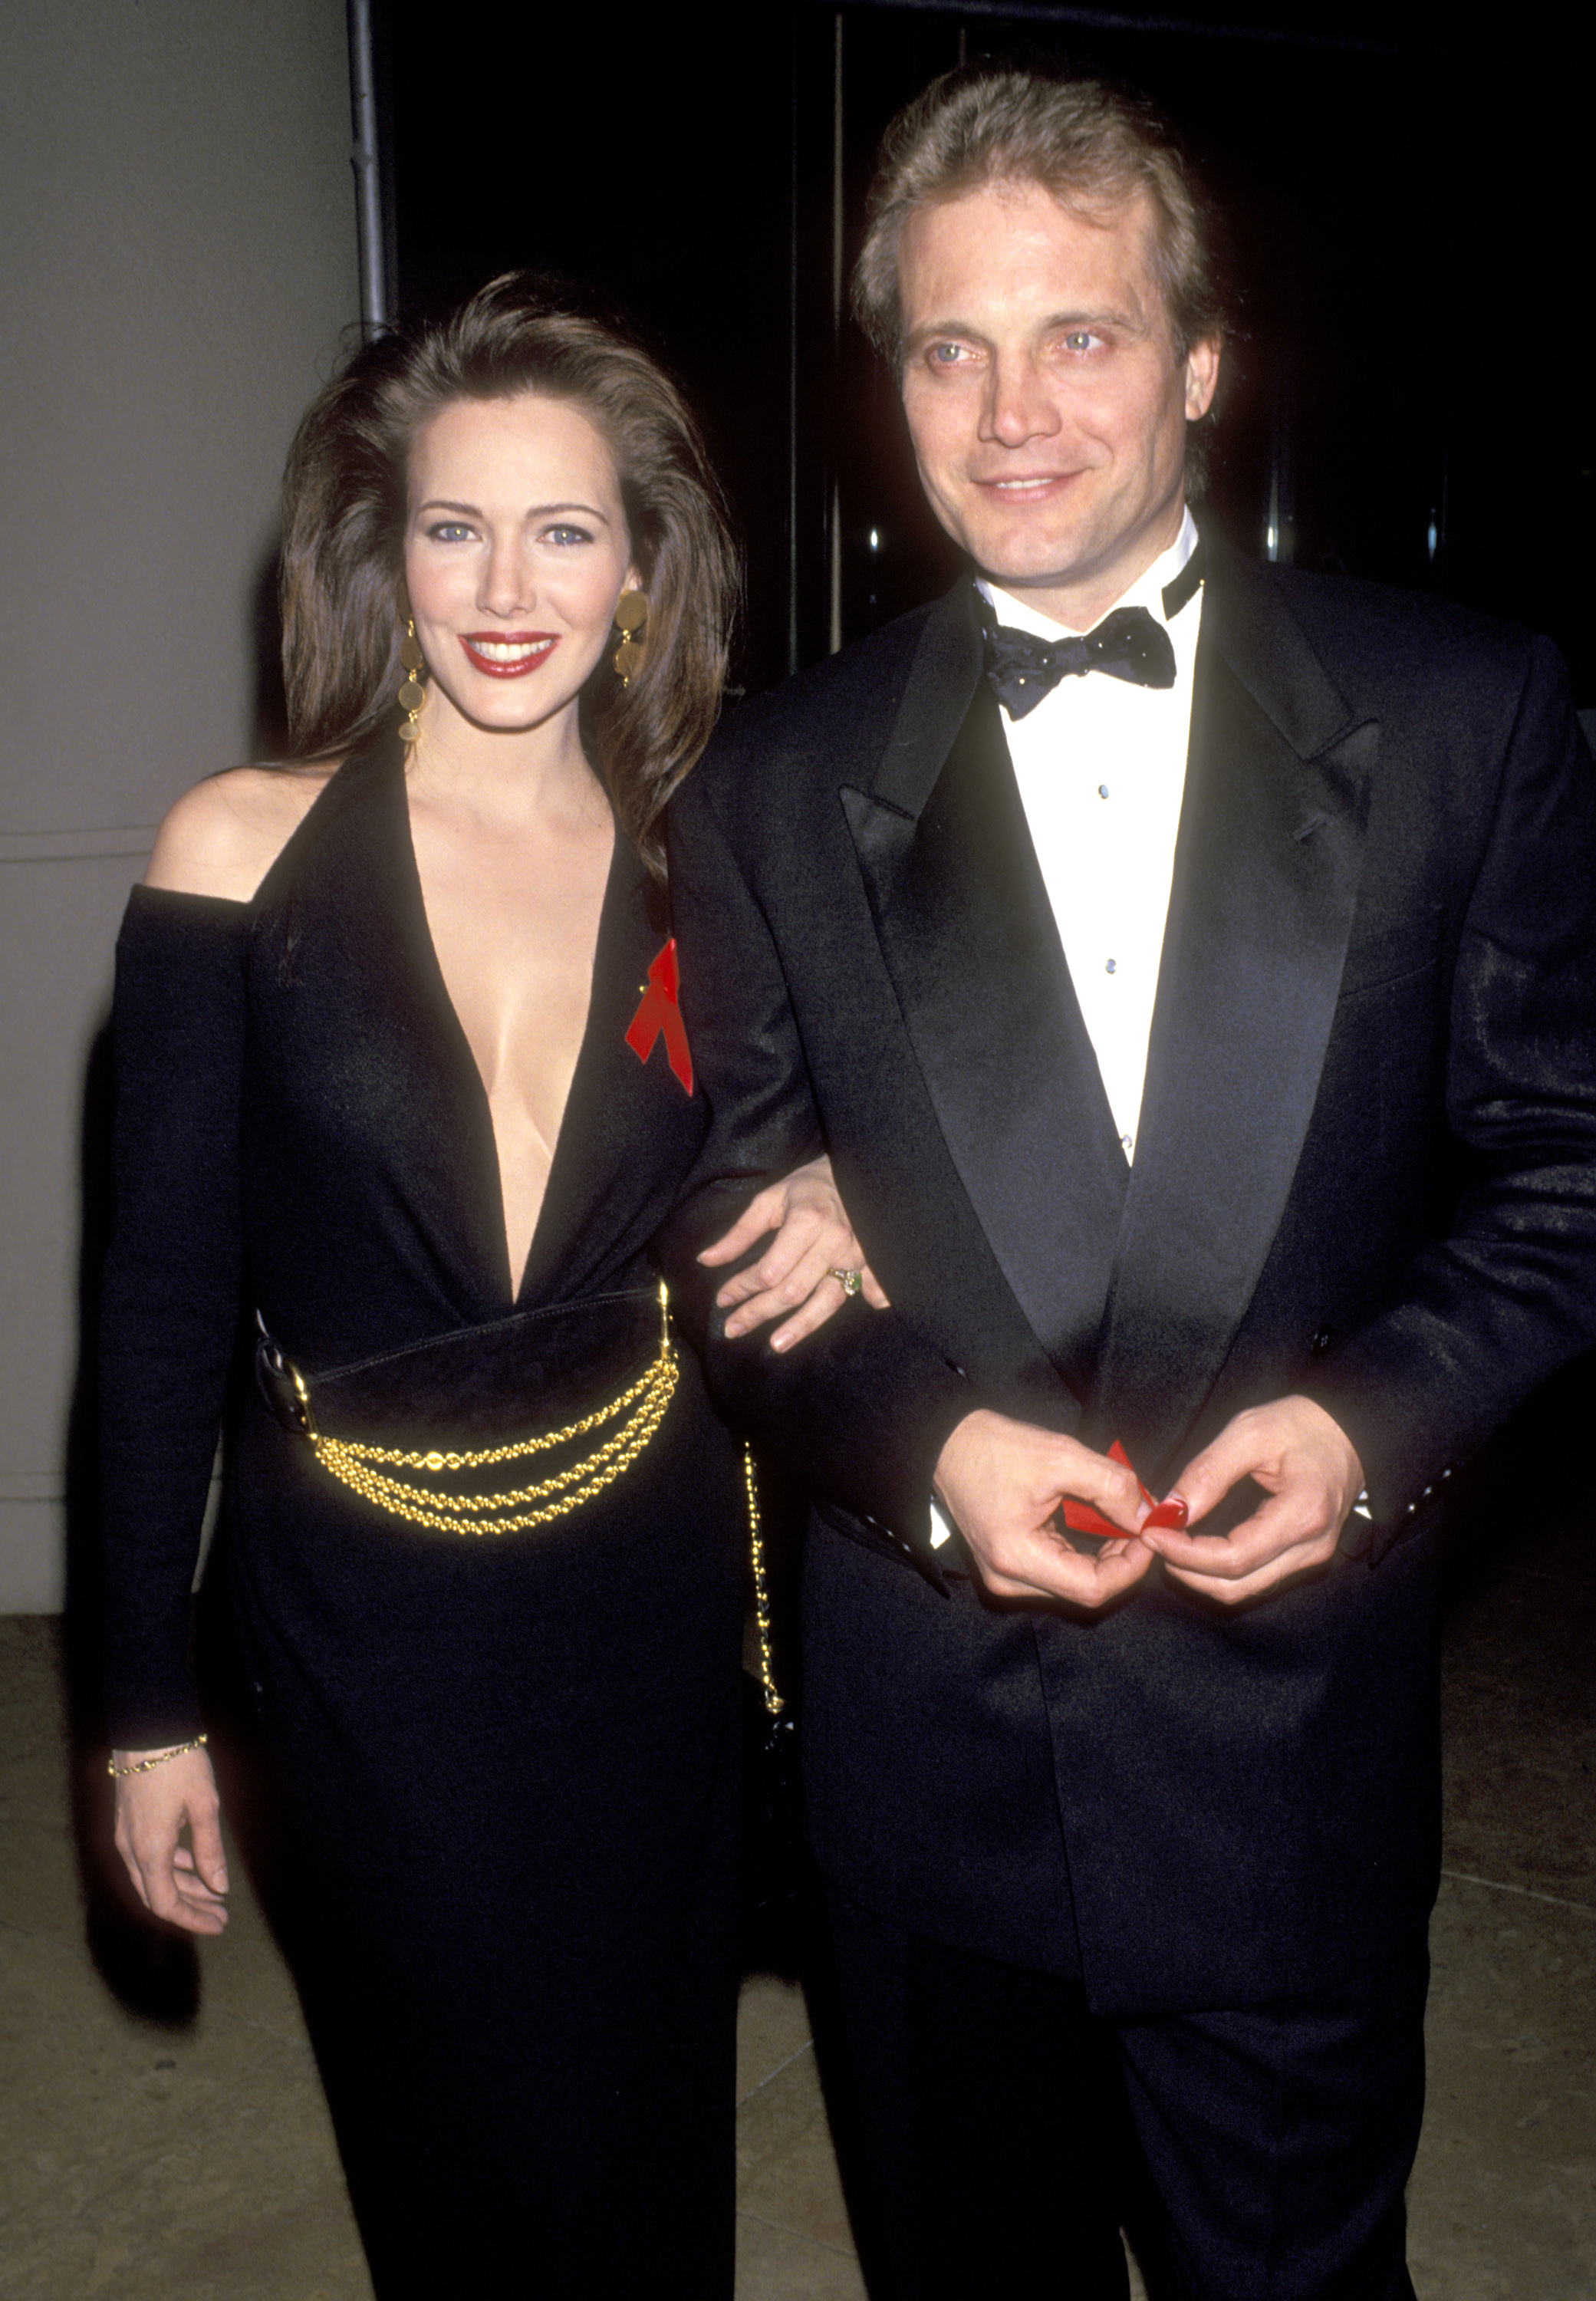 Actors Hunter Tylo and Michael Tylor attend the Ninth Annual Soap Opera Digest Awards on February 26, 1993 at Beverly Hilton Hotel in Beverly Hills, California.